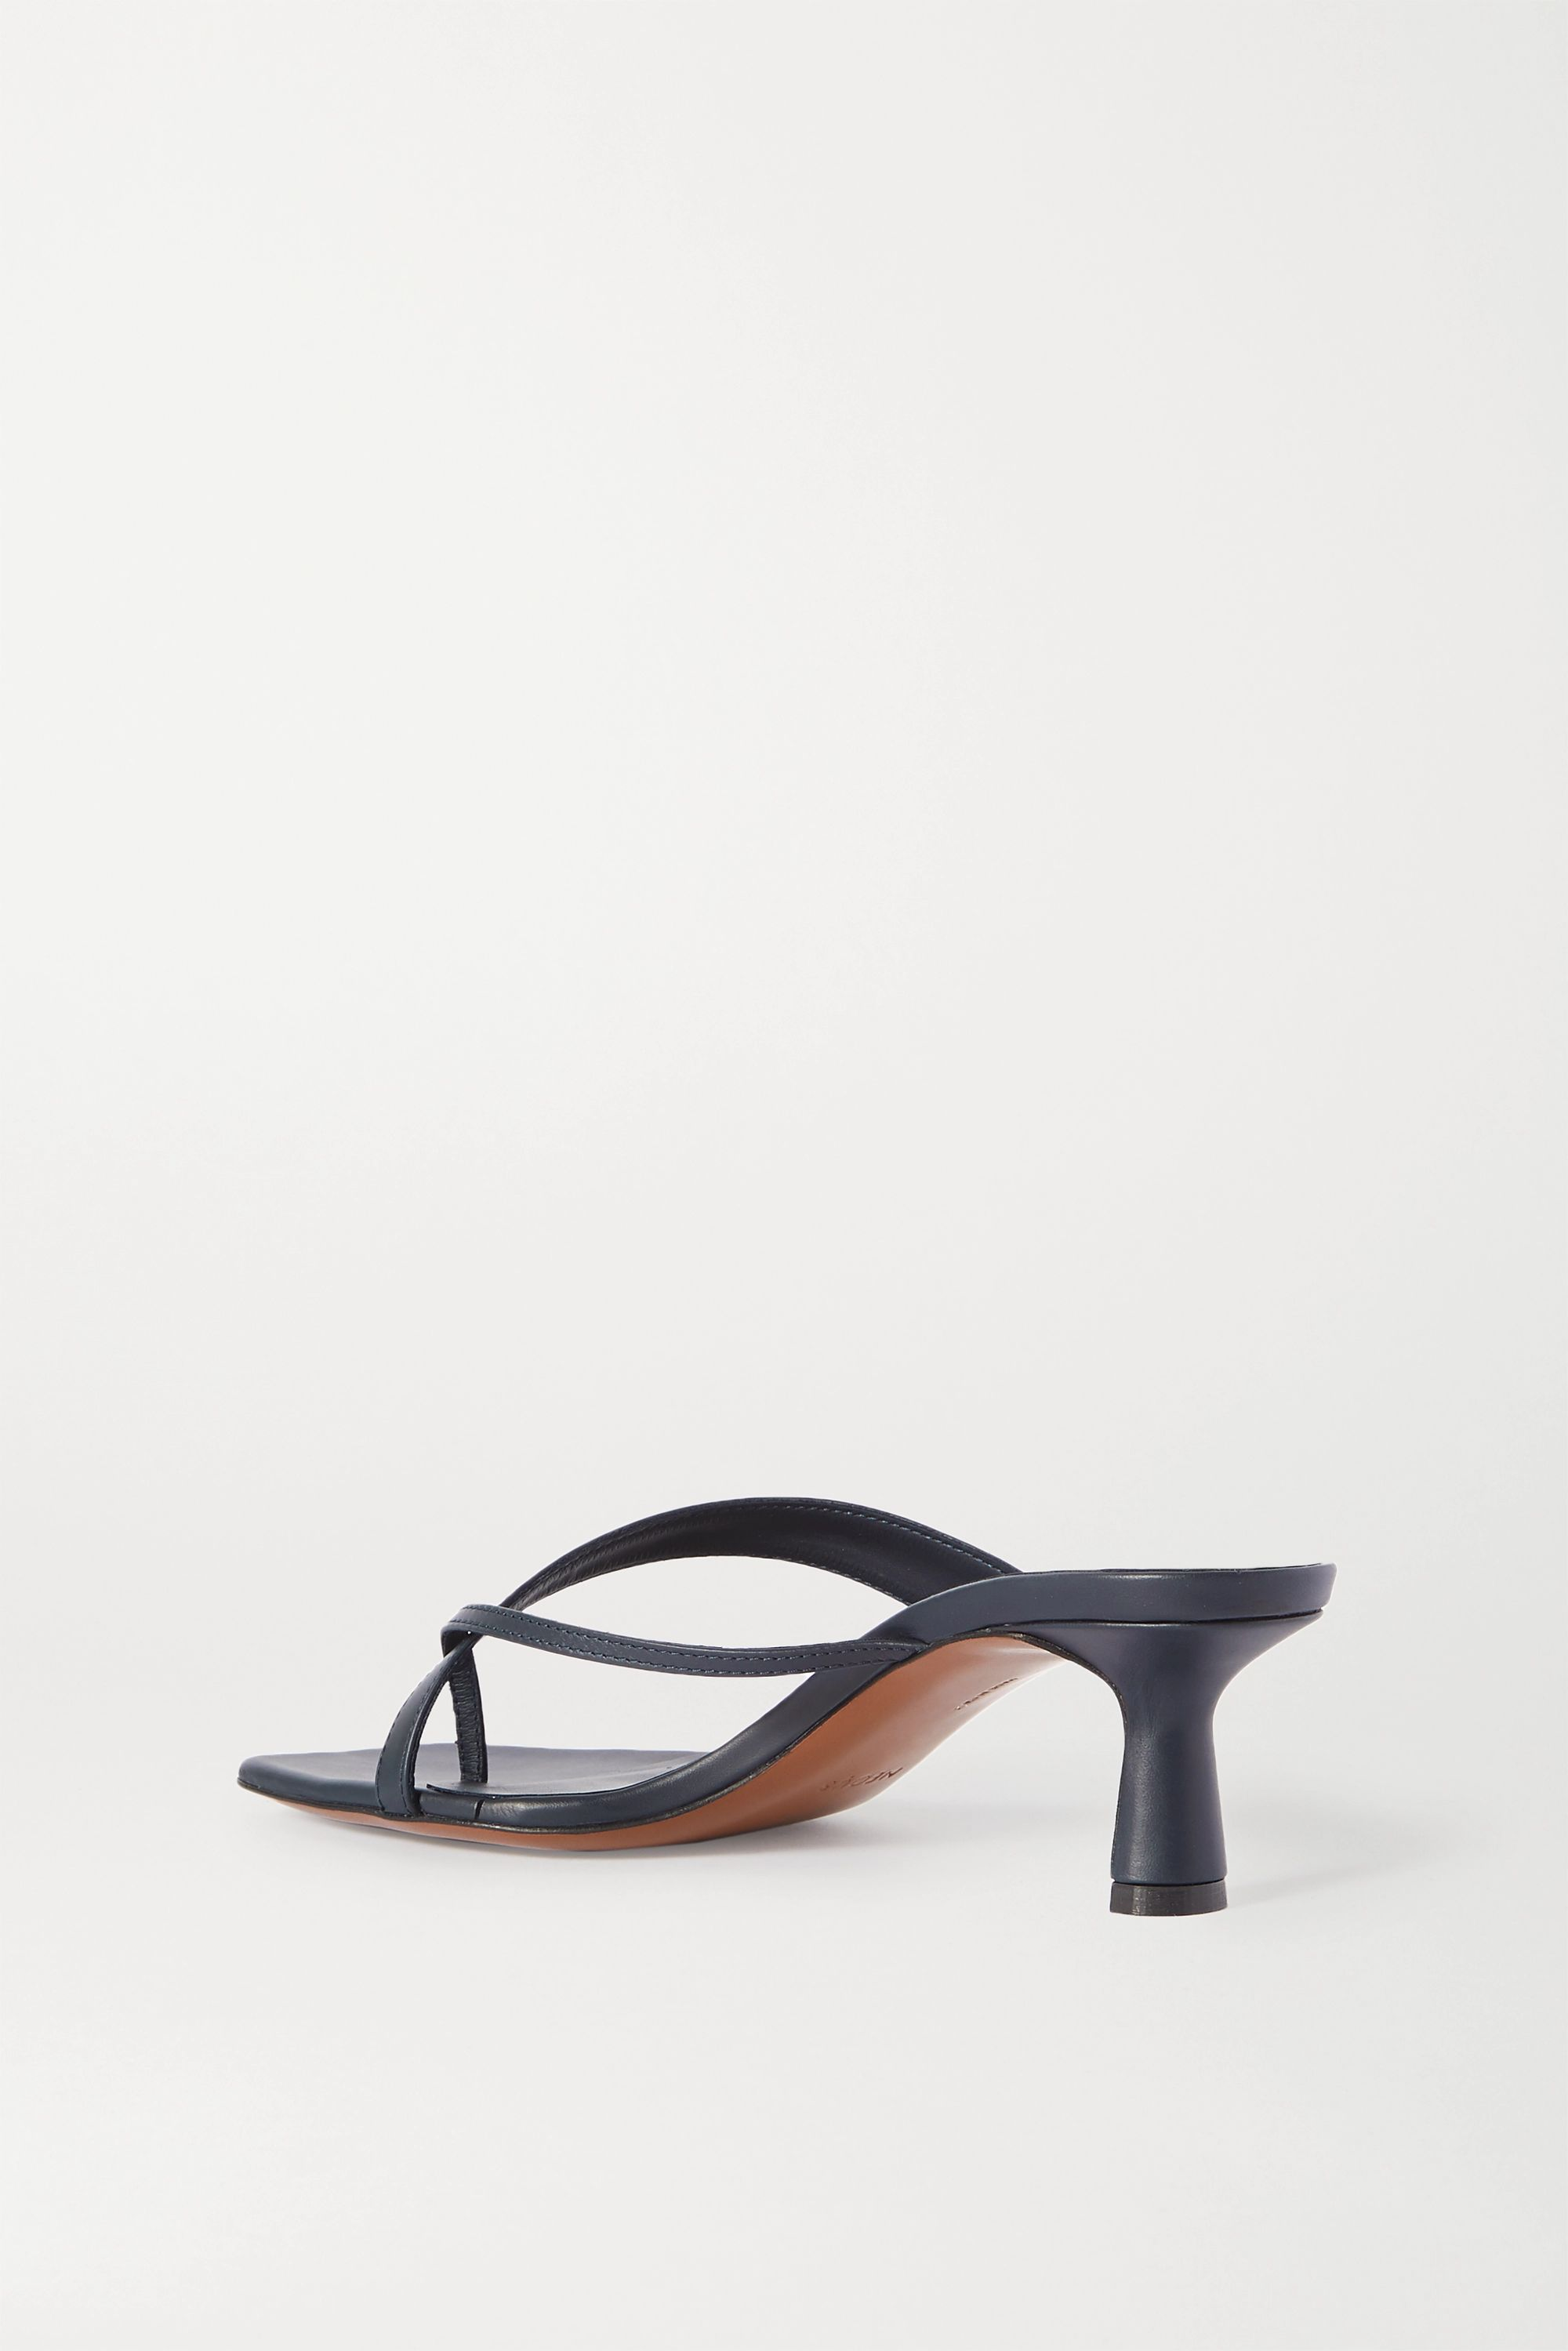 Neous Florae leather sandals